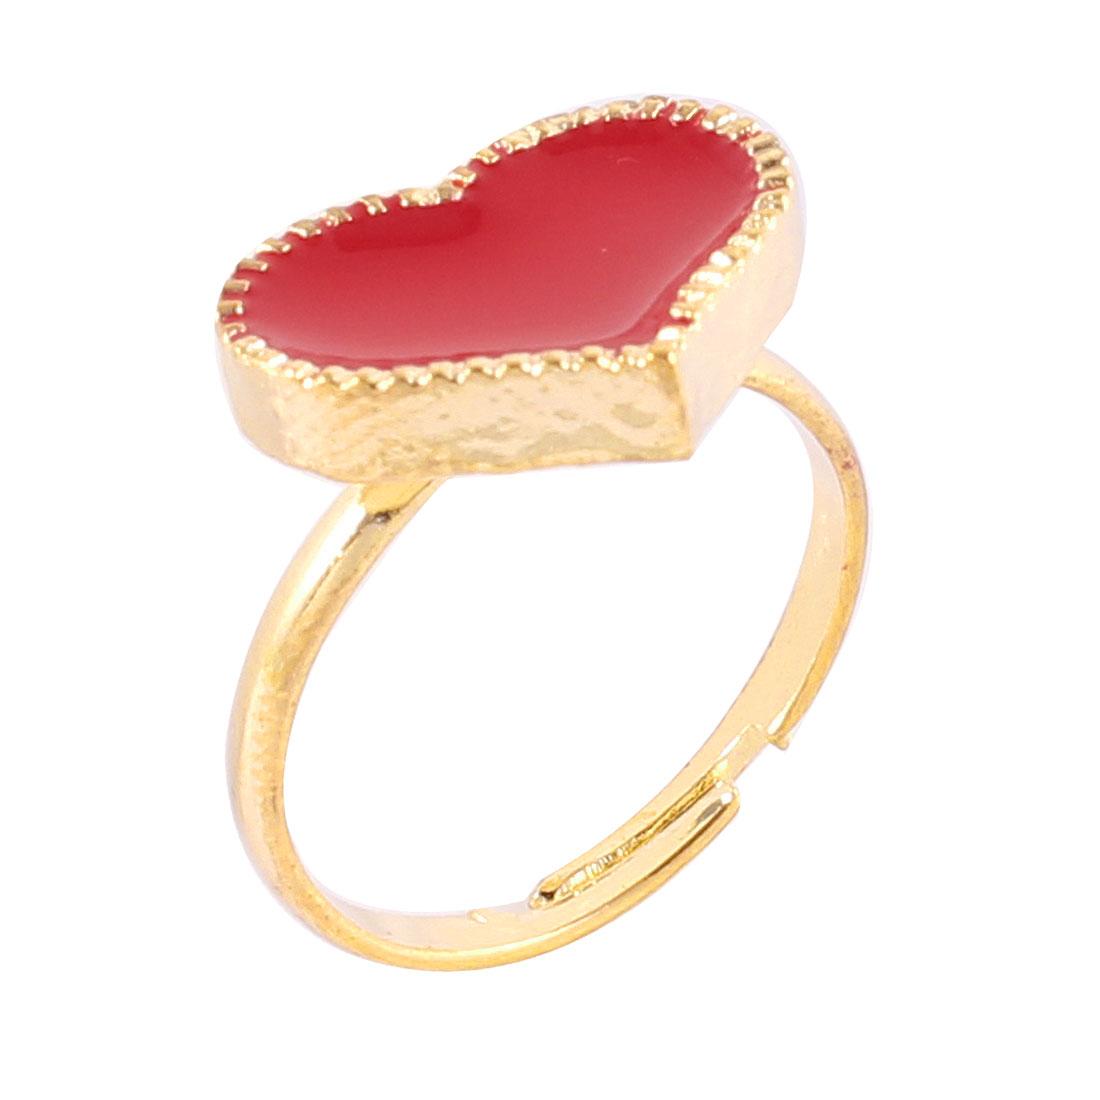 Ladies Red Heart Shape Decor Gold Tone Metal Adjustable Finger Ring